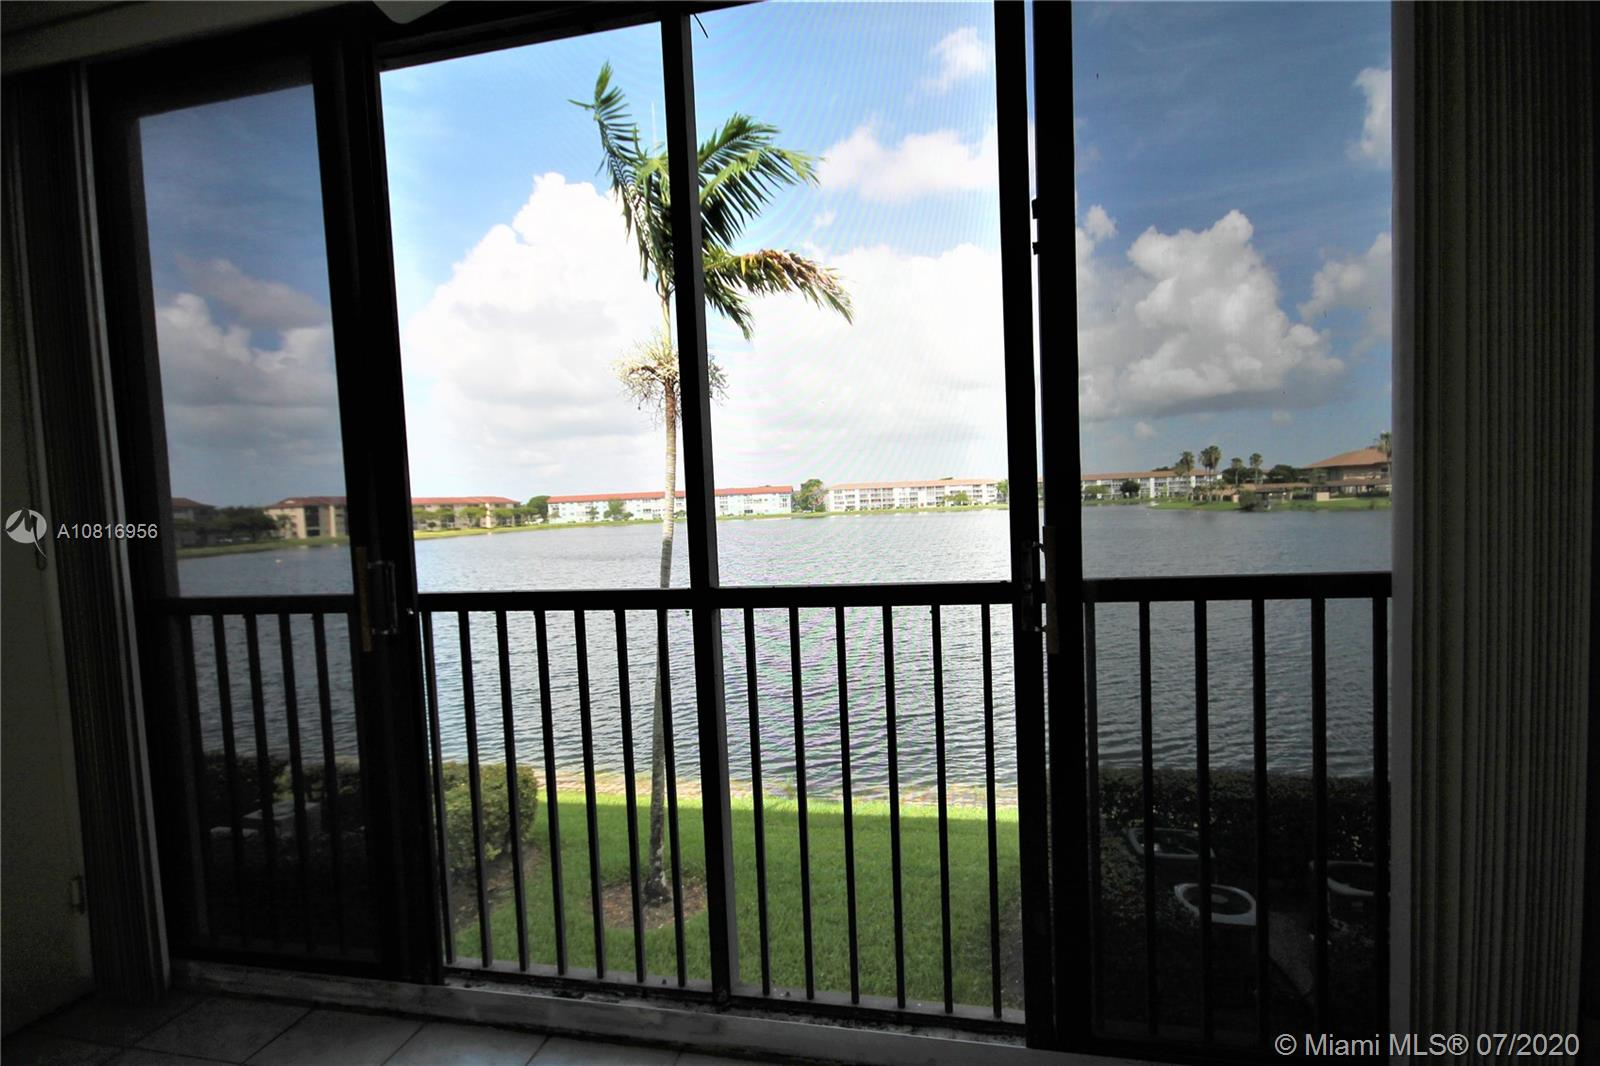 LAKEFRONT CENTURY VILLAGE CONDO WITH A BEAUTIFUL VIEW, VERY SPACIOUS LIVING AND DINING ROOM. 1 LARGE BEDROOM, 1.5 BATHROOM, MINT CONDITION, CENTRAL  A/C, WATER HEATER, WASHER/DRYER IN UNIT. FULL CLUB HOUSE FACILITIES, INC, GOLF COURSES, BUSES ARE AVAILABLE TO TAKE YOU SHOPPING AND TO  GREAT RESTAURANTS, WALK TO SPARKLING POOL, ALSO INDOOR POOL, WERE THE AEROBIC CLASSES TAKE PLACE. GREAT FITNESS CENTER, ELEVATOR FOR YOUR CONVENIENCE. PLAY CARDS, WATCH MOST REASON MOVIES. MEET NEW FRIENDS. CALL OR TEXT AGENT FOR APPOINTMENT.